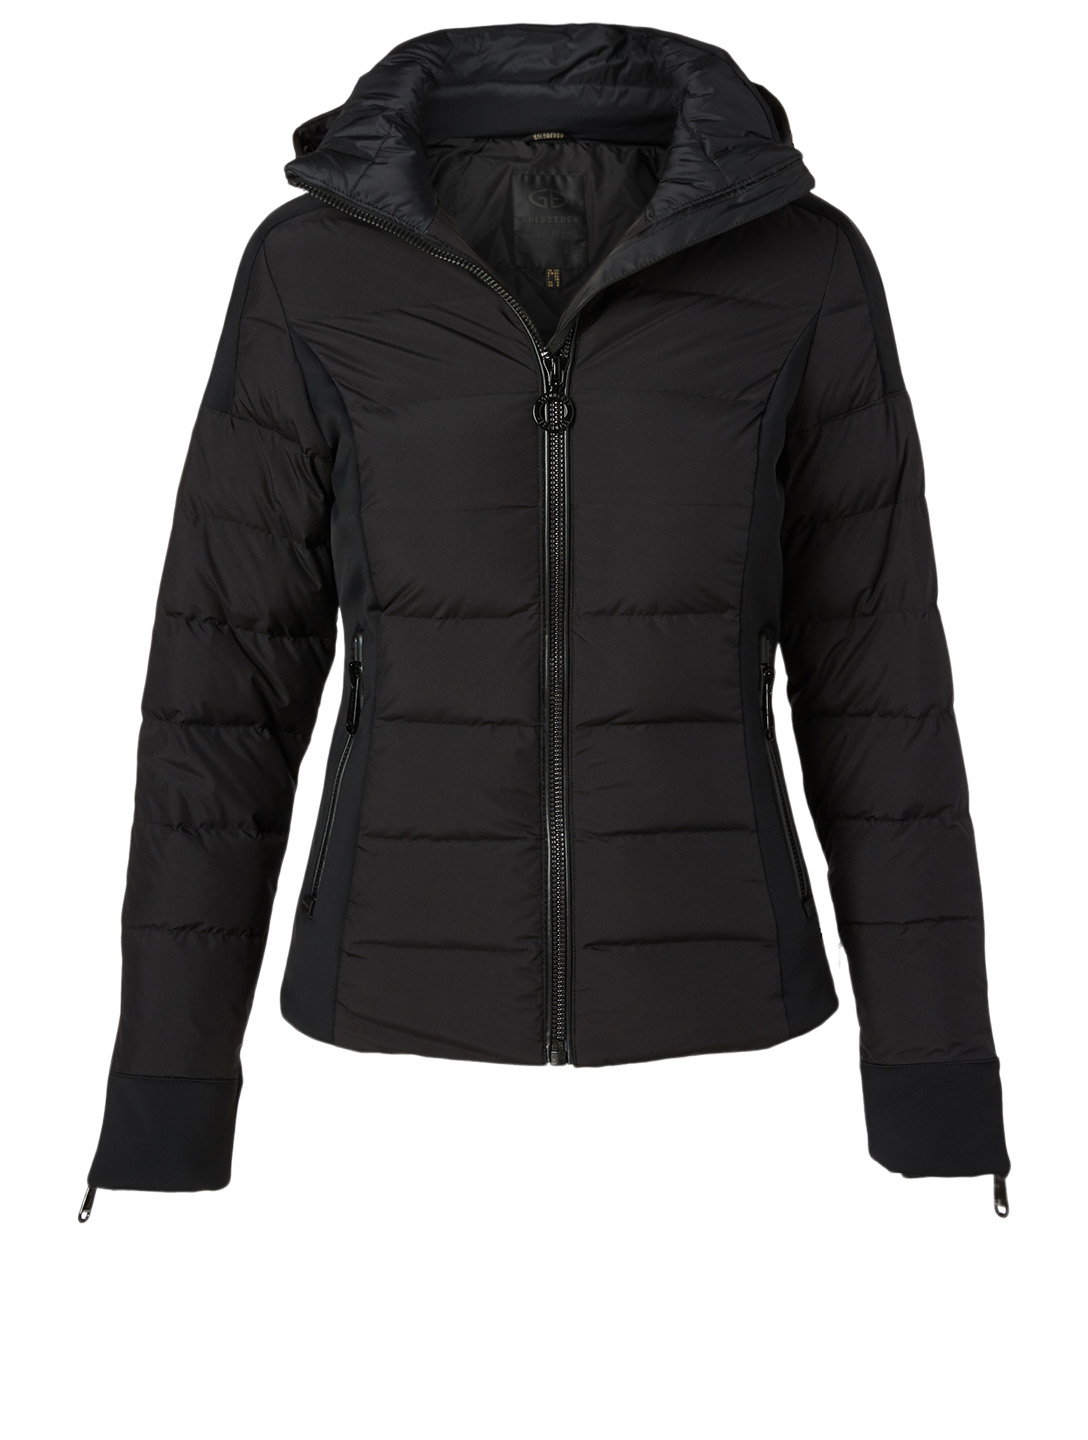 GOLDBERGH Almeta Down Jacket Women's Black